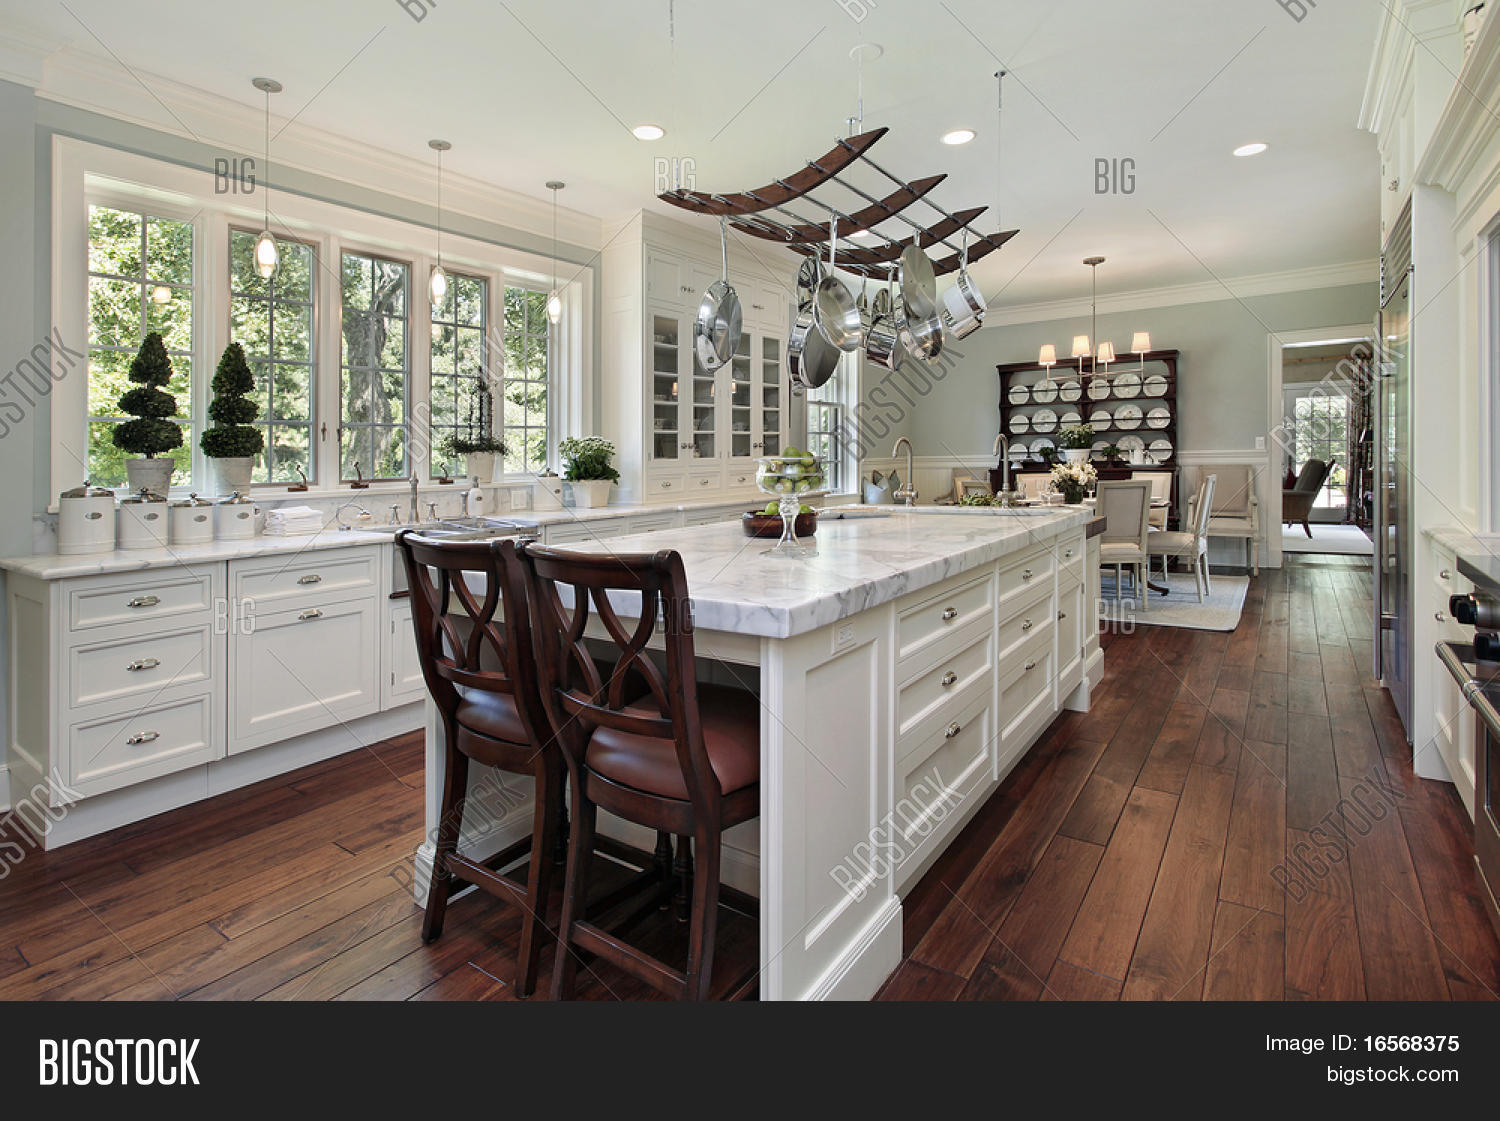 Granite Island Kitchen Kitchen In Luxury Home With White Granite Island Stock Photo